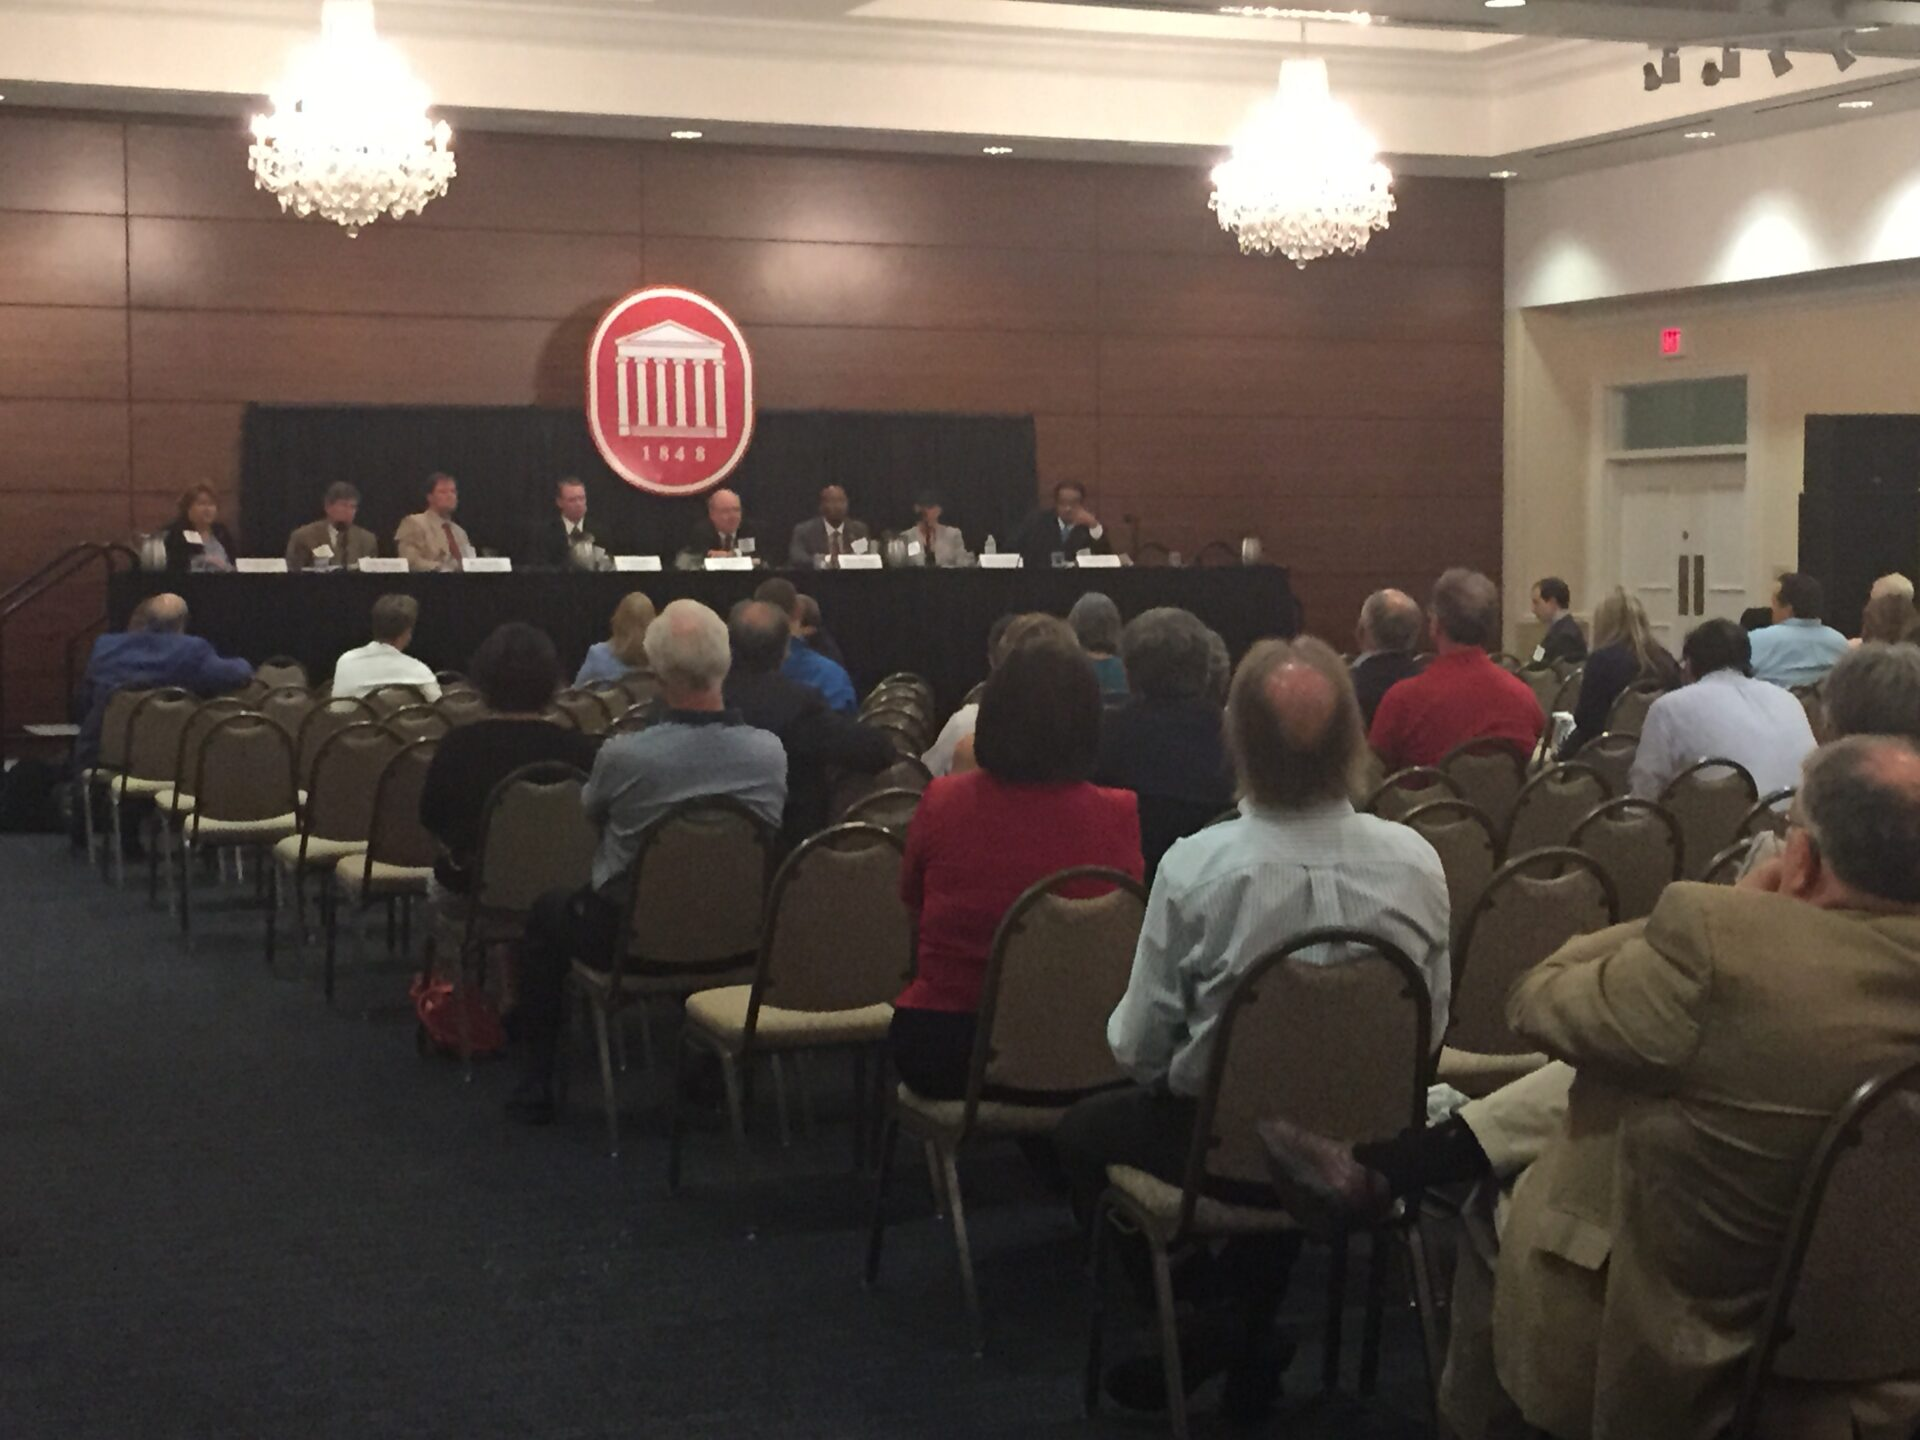 University of Mississippi faculty and staff members met with members of the Board Search Committee on Tuesday to discuss the qualities that they believe the next chancellor should possess. The Board held two Campus Listening Sessions for alumni, faculty and students.